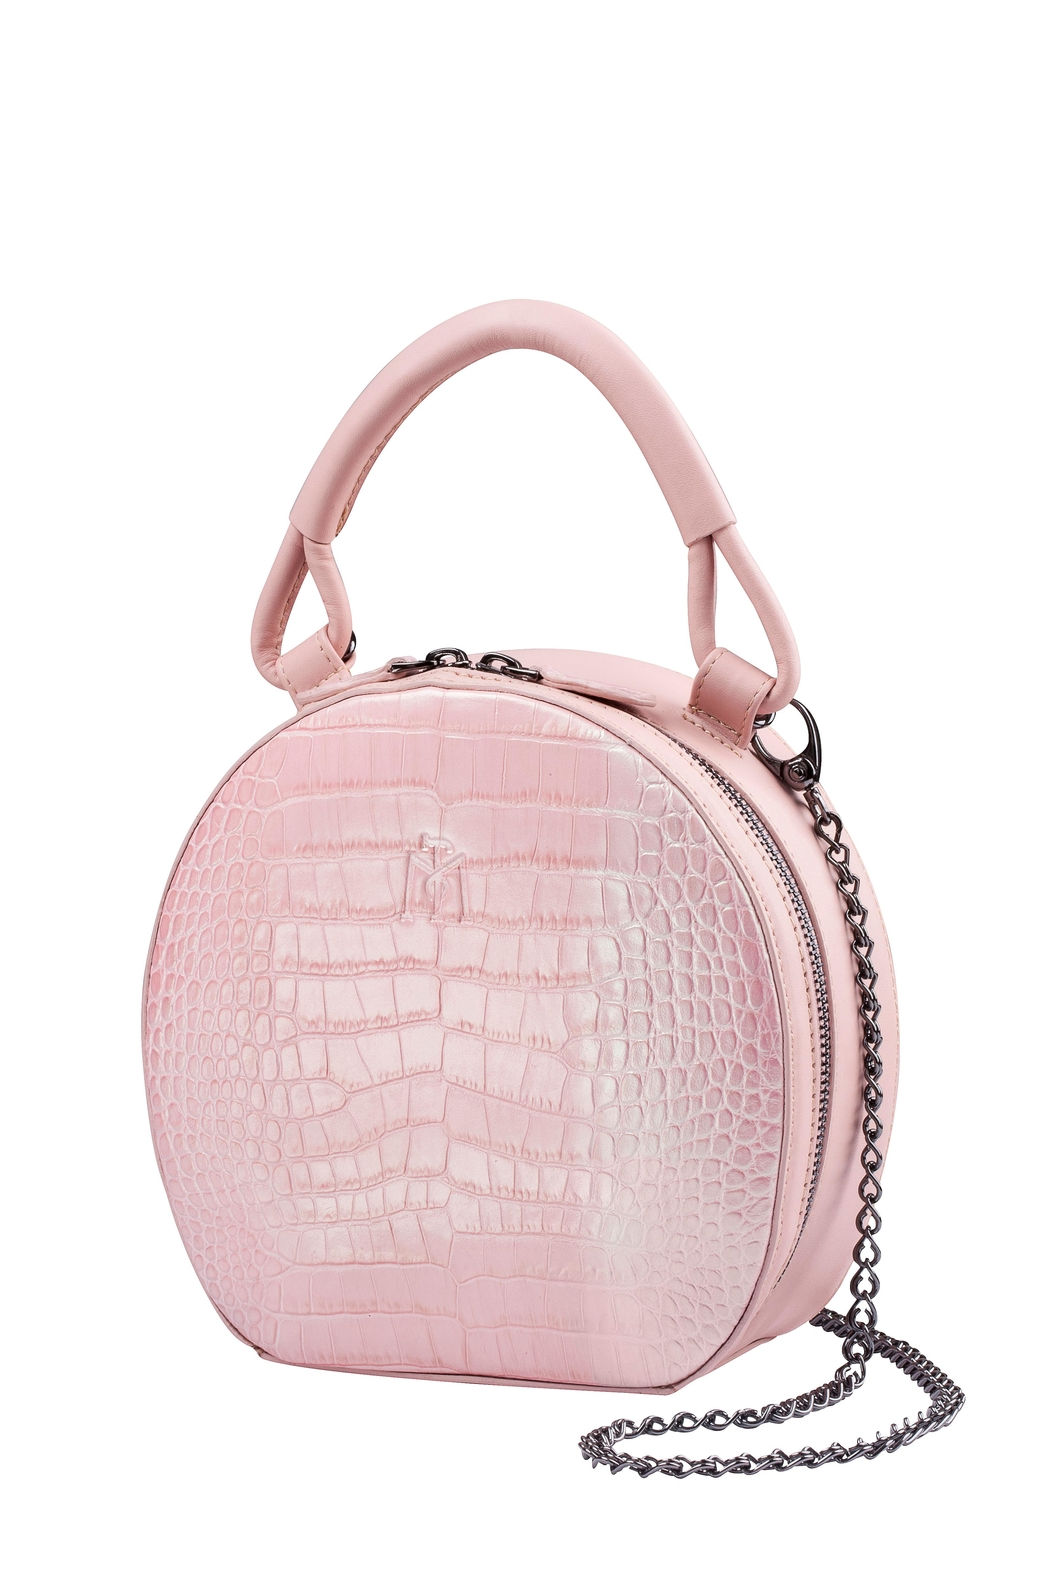 Martella Bags Pink Leather Bag - Main Image